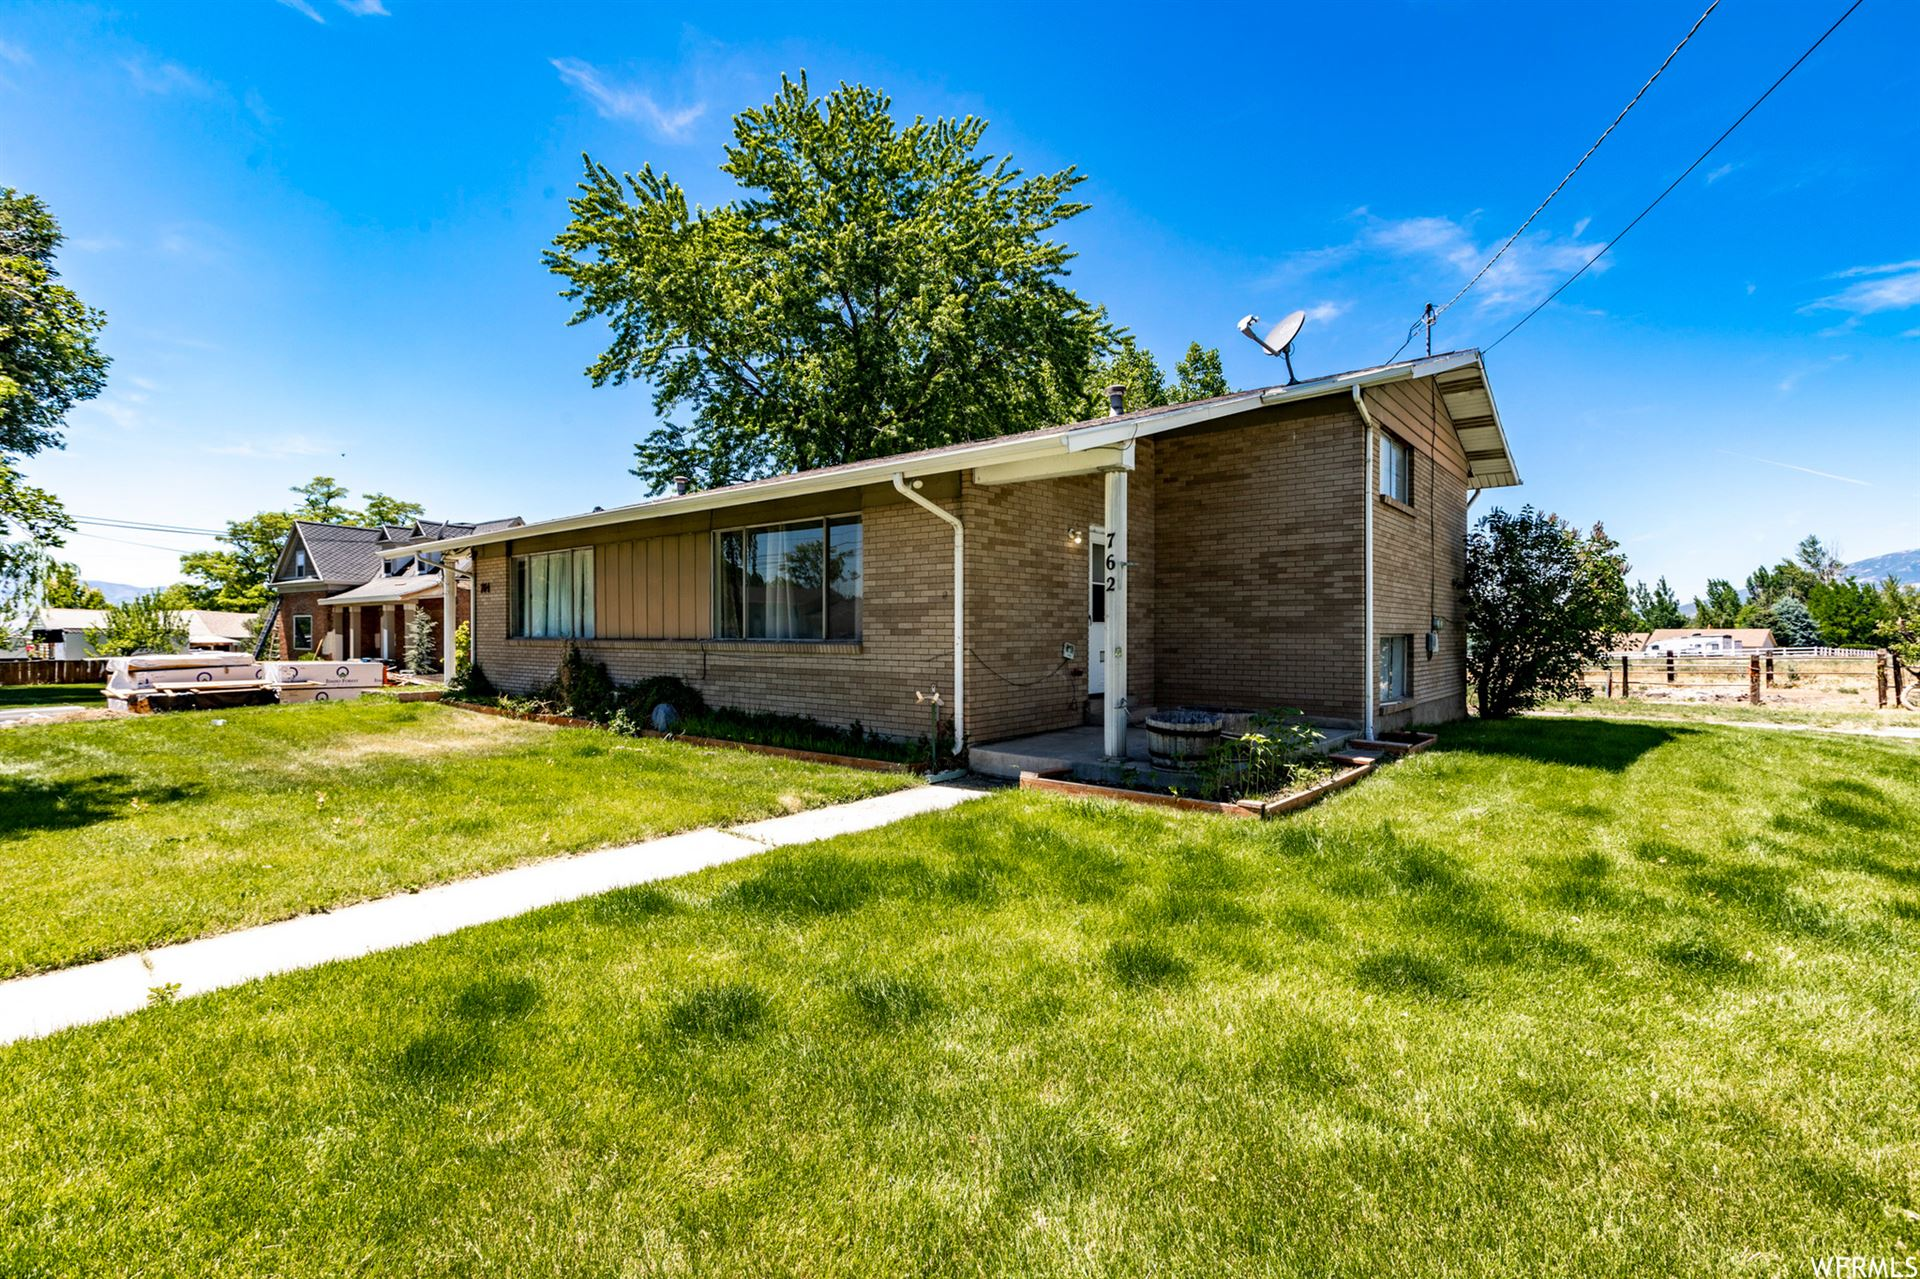 Photo of 762 W LAKEVIEW RD, Lindon, UT 84042 (MLS # 1748333)